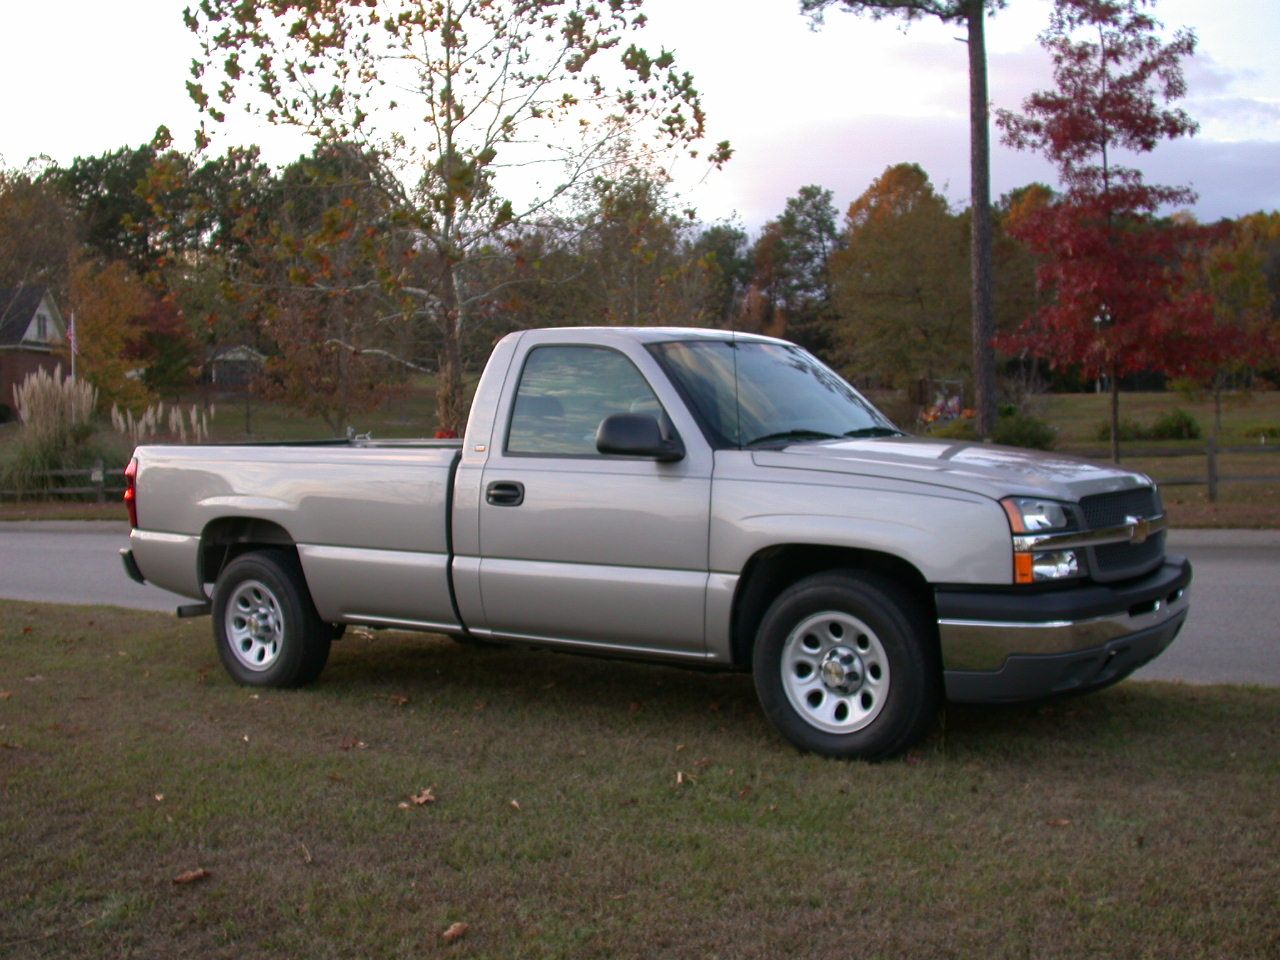 2005 Chevy Silverado For Sale >> For Sale By Slim 2005 Chevrolet Silverado Regular Cab 2wd